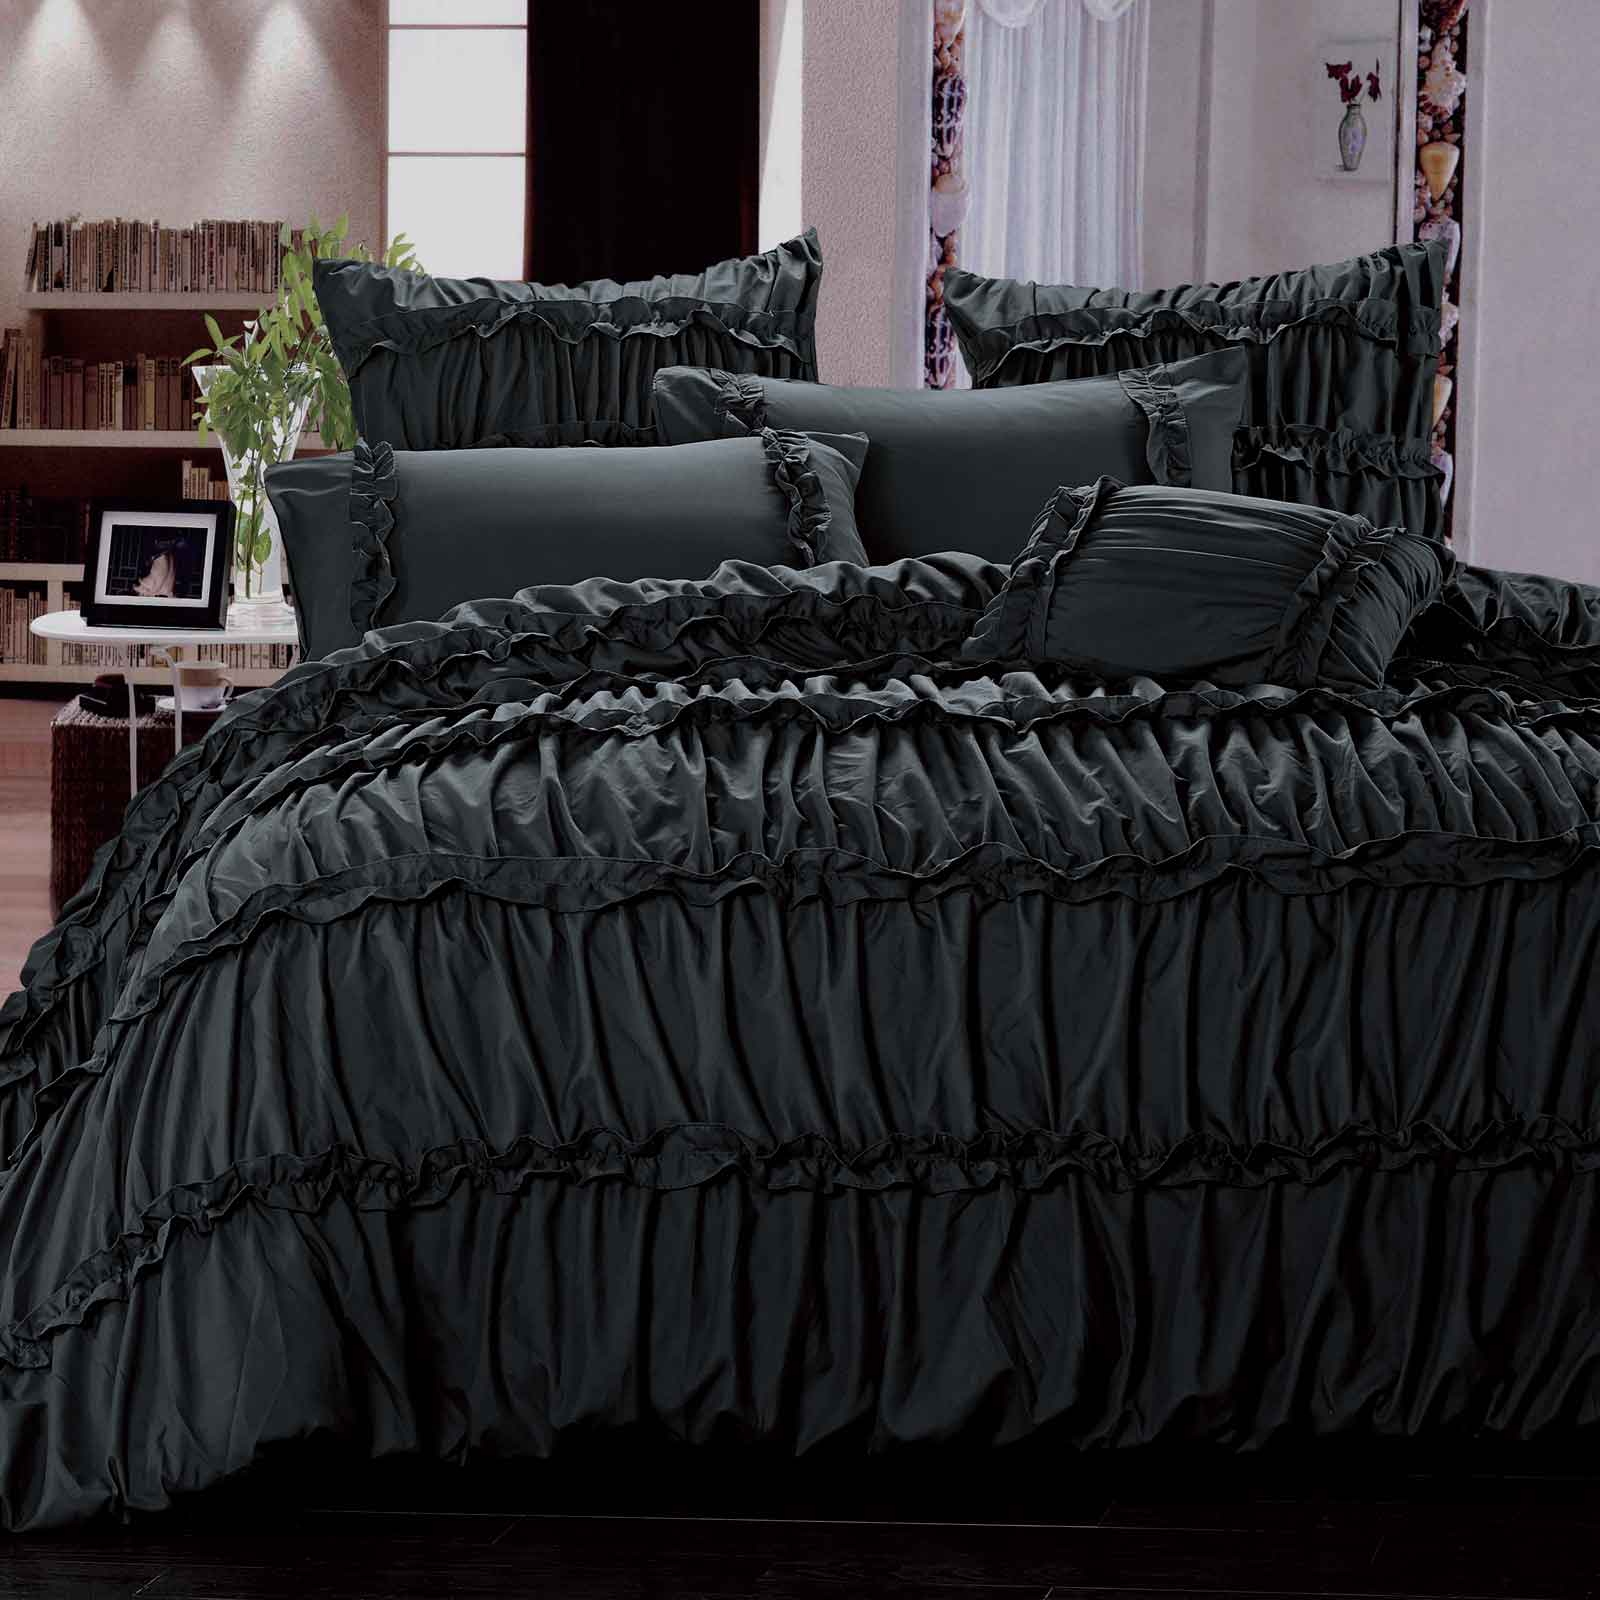 Charlotte-King-Queen-Size-Duvet-Quilt-Cover-Set-Black-3Pcs-Bedding-Set-Bed-Linen